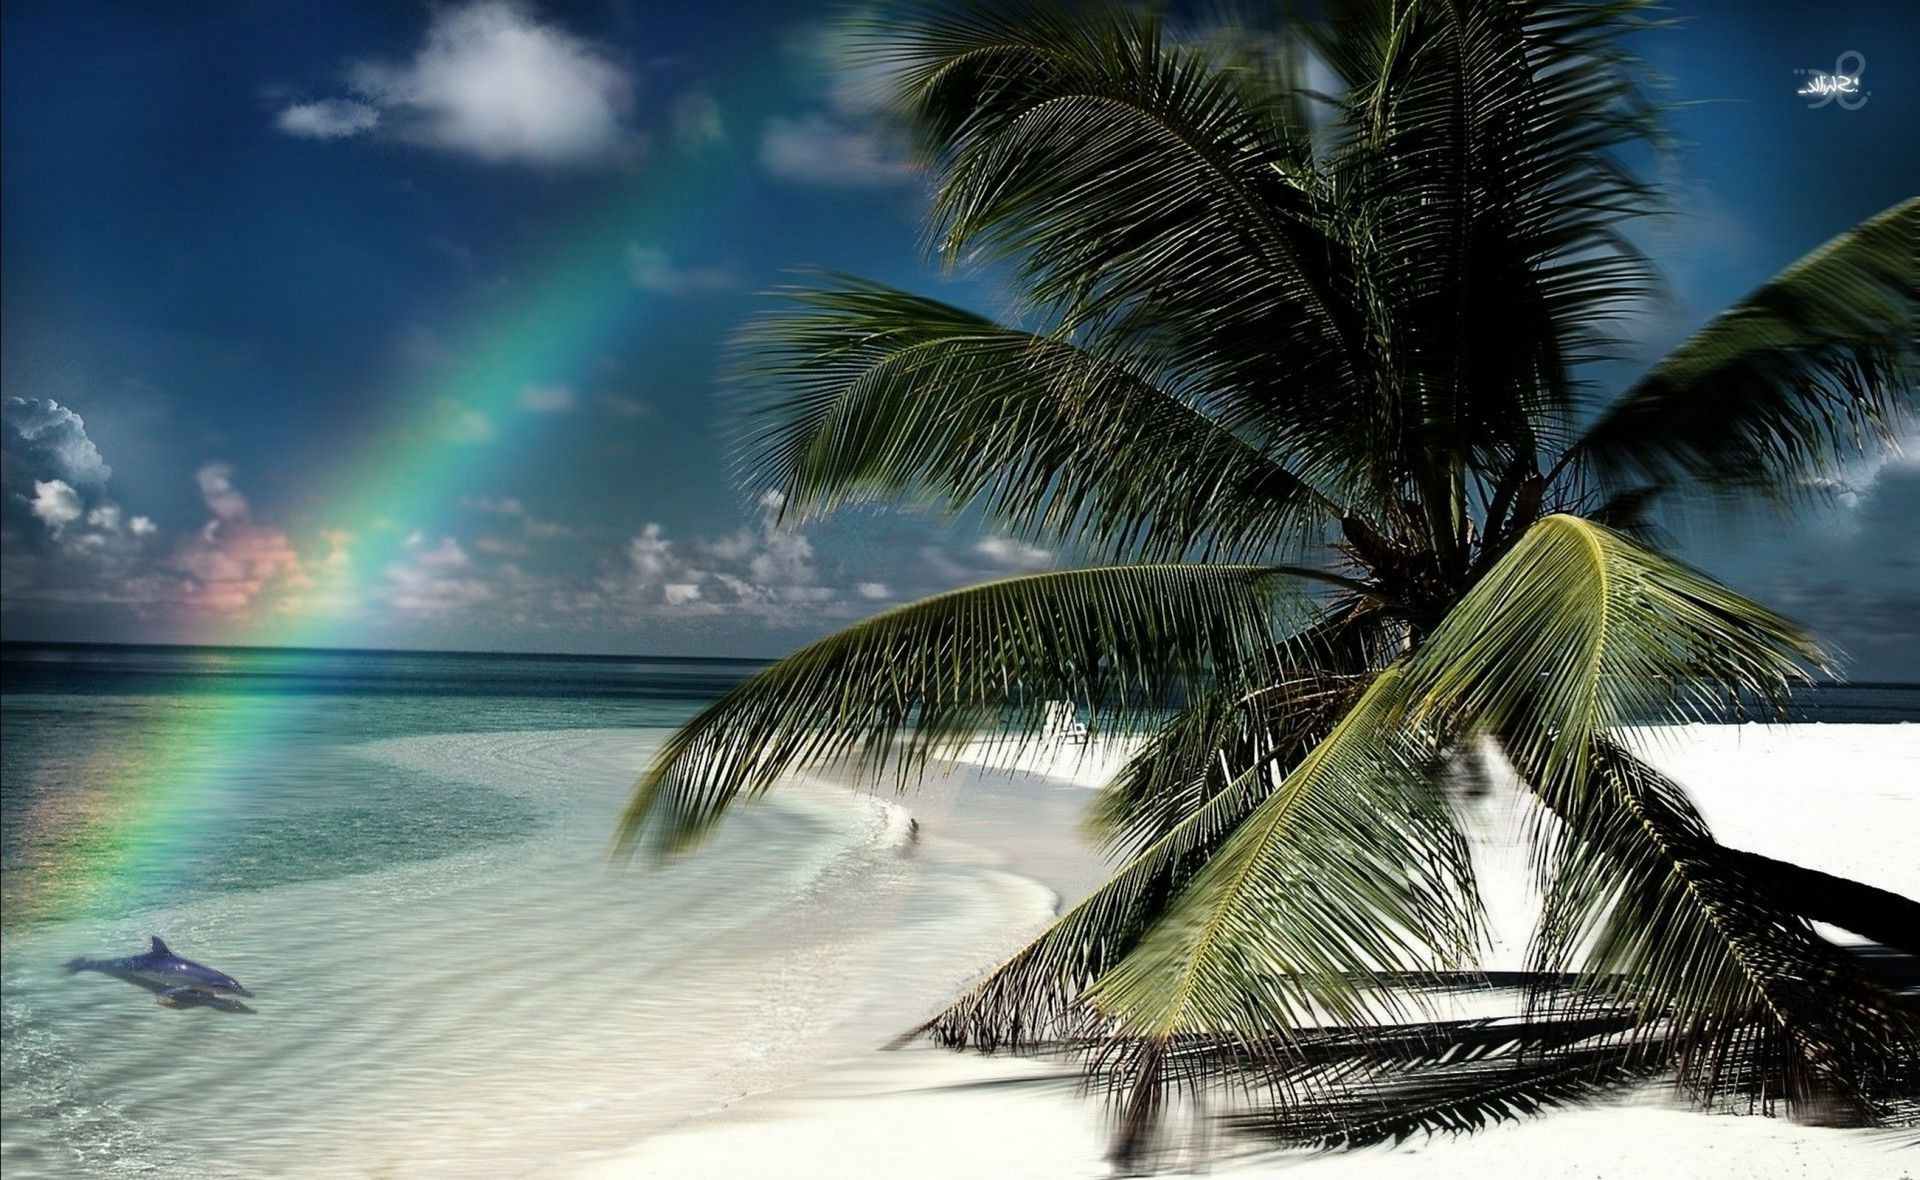 rainbow tropical beach ocean palm sand water exotic paradise seashore island seascape resort travel sun coconut summer lagoon